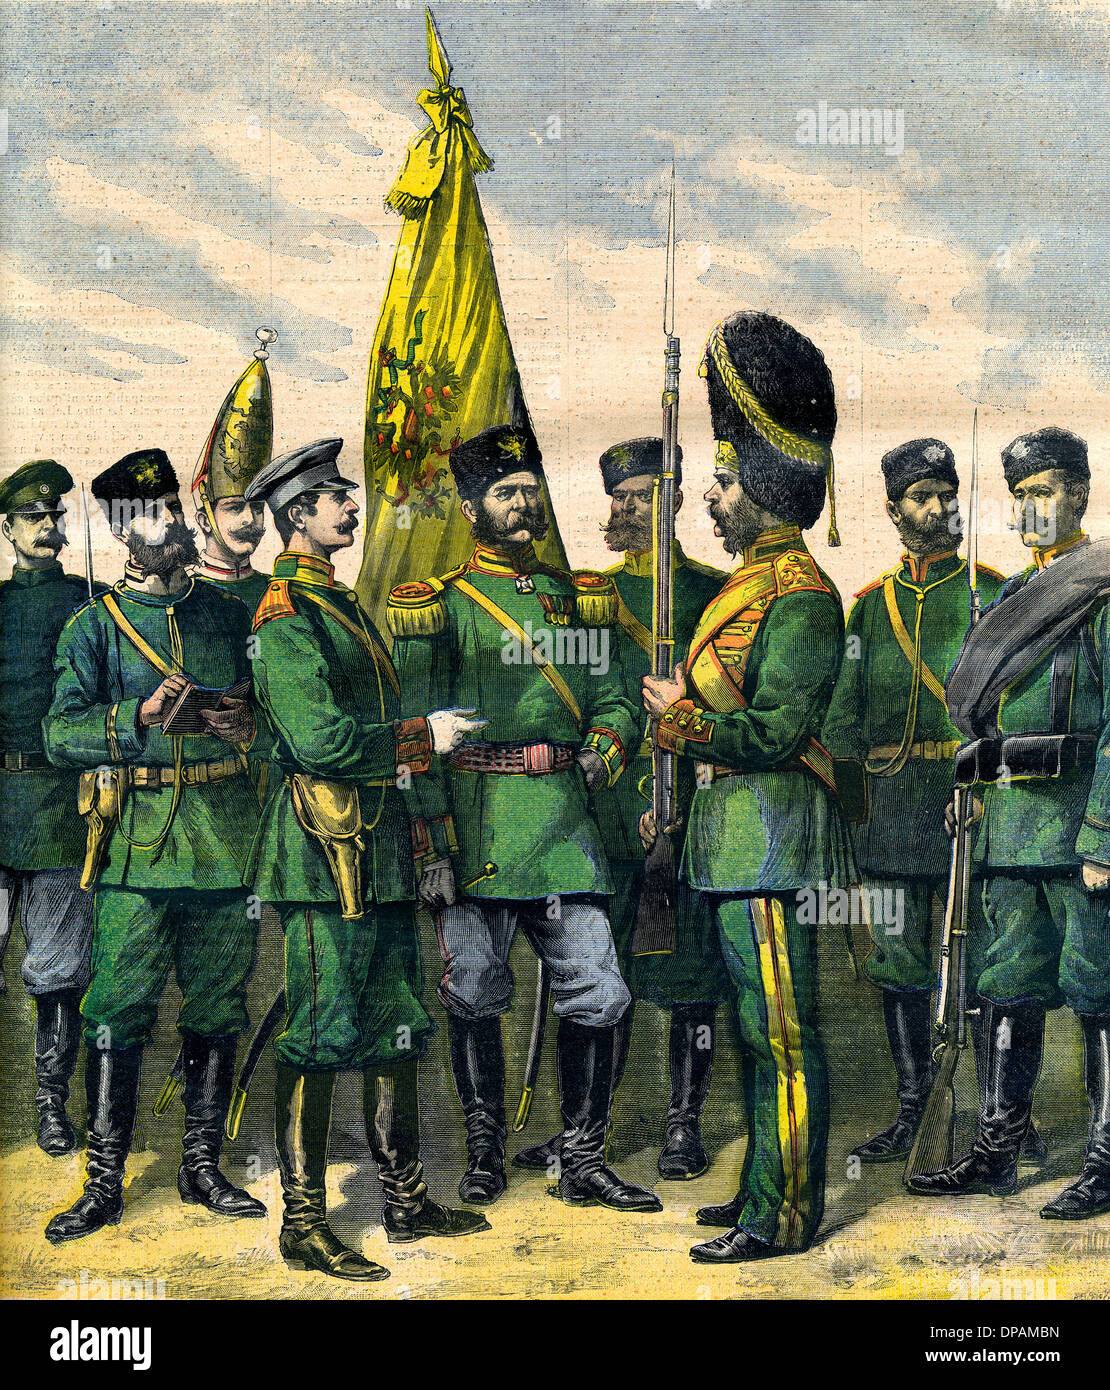 RUSSIAN INFANTRY 1892 - Stock Image